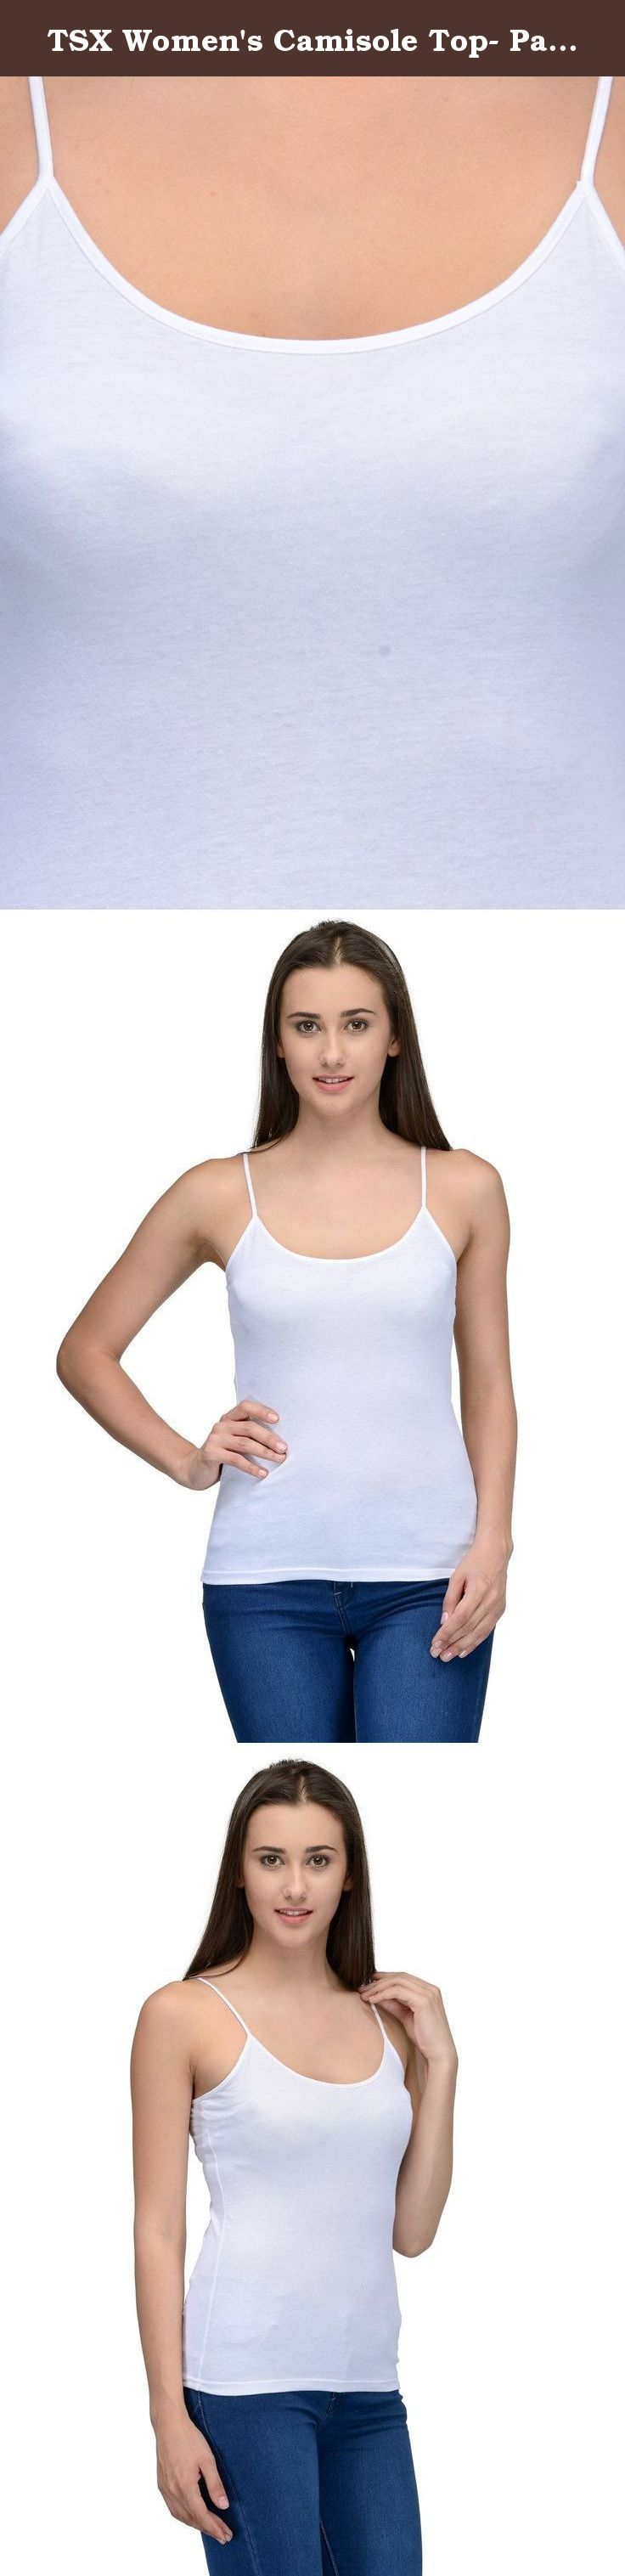 TSX Women's Camisole Top- Pack of 6. Launching our women camisoles made out of very soft poly cotton fabric for the modern day women. Our noodle strap tops or camisoles are made to be worn as innerwear or even outerwear during the summers. Pair these up with shorts, jeggings, denims for the ultra cool look.